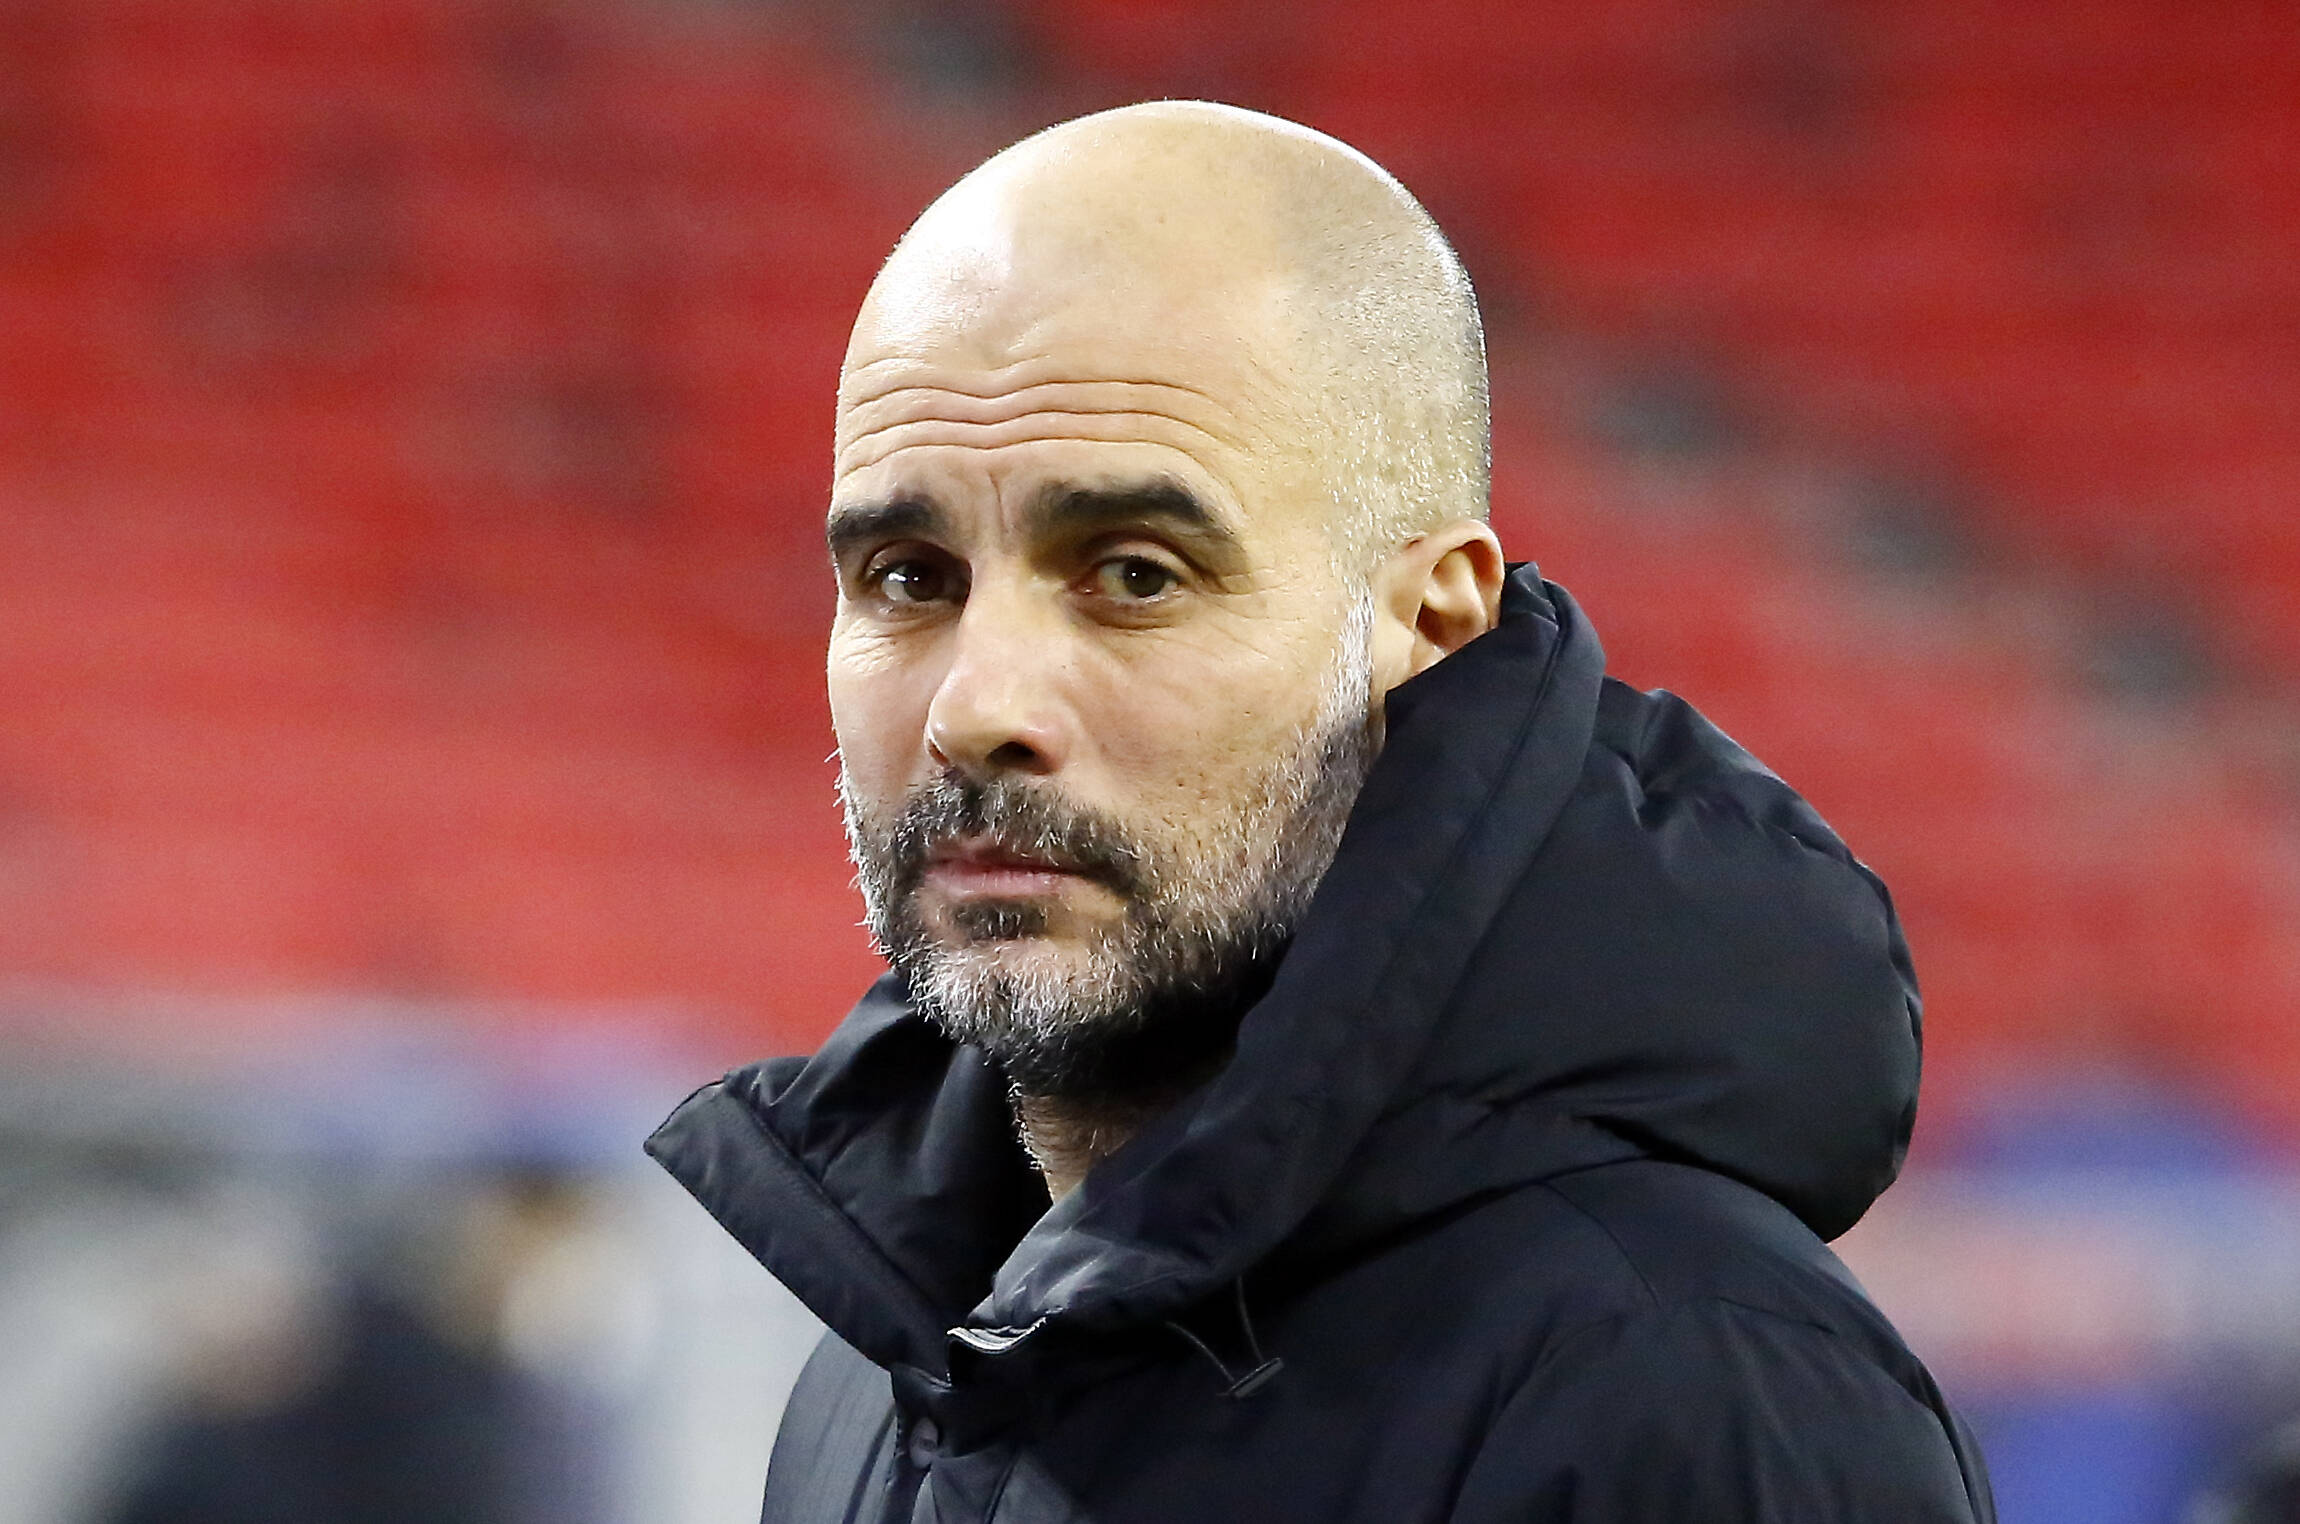 Fit for a crown: Pep Guardiola on the cusp of history